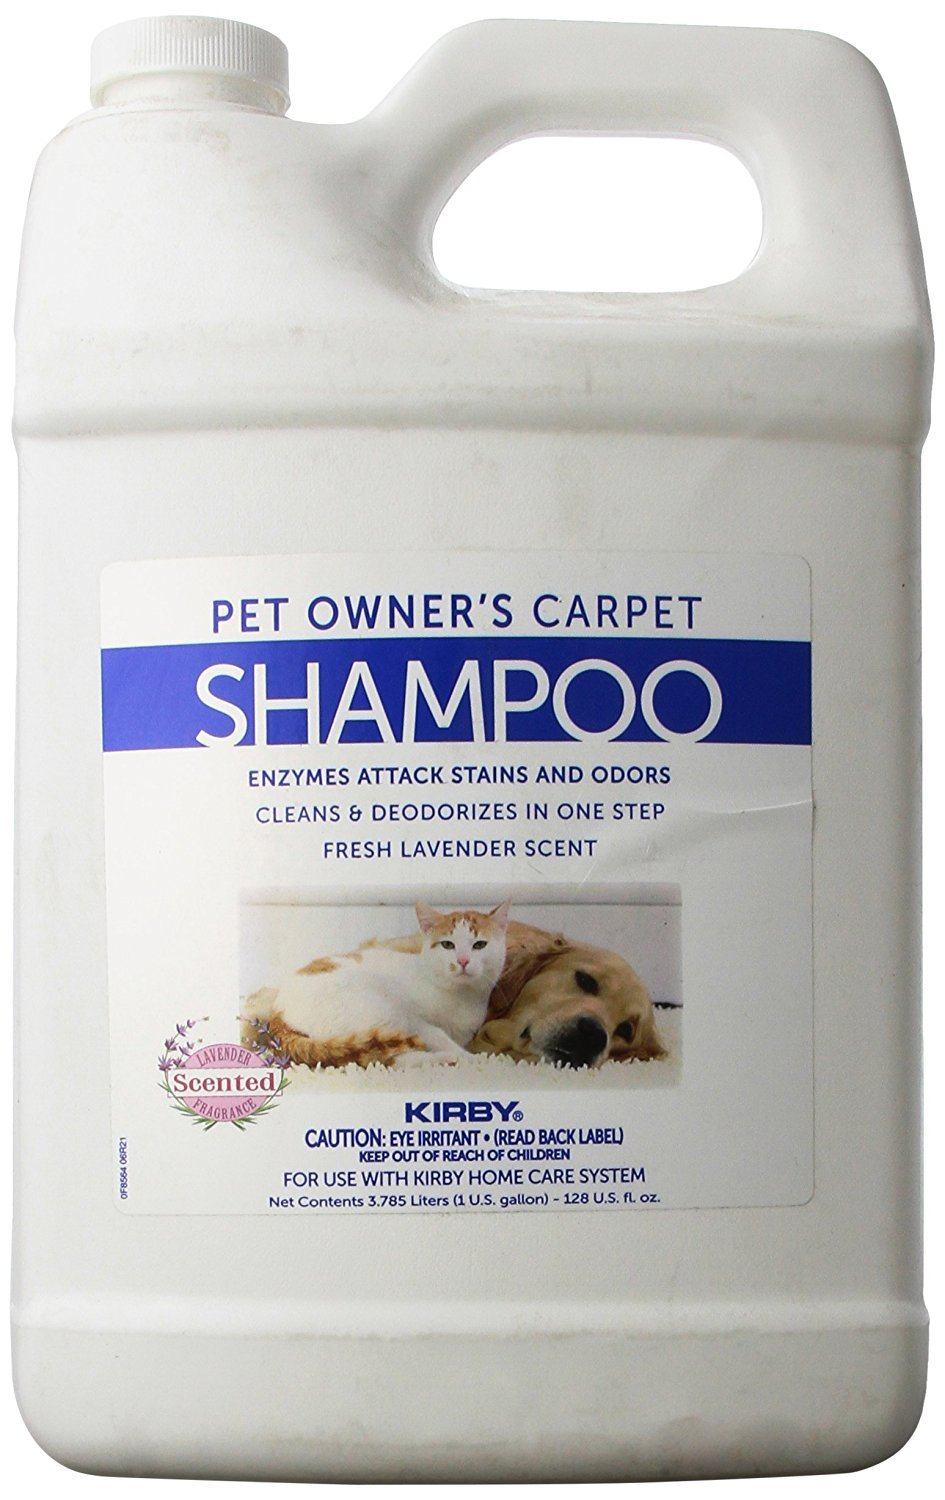 KIRBY Genuine 237507S Pet Owners Foaming Carpet Shampoo (Lavender Scented) Use with SE2 Sentria 2 G11, Sentria SE G10 G9, DE G8 Diamond Edition, ULTG G7, G6 G2001, G5, G4, G3,Legend, (2..PACK)